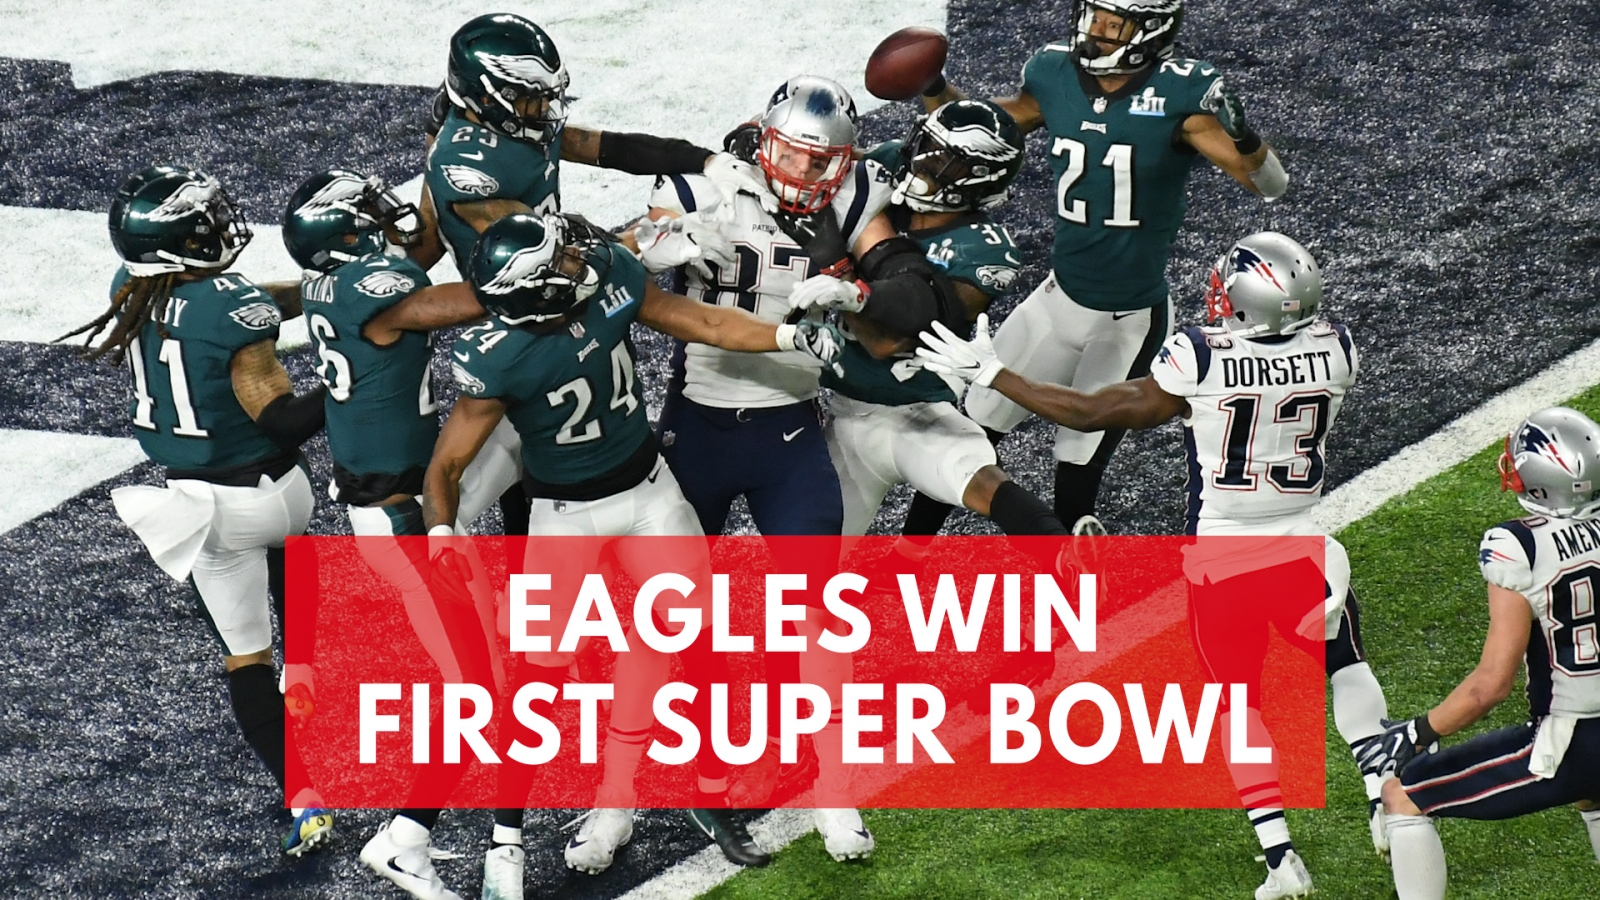 Nick Foles Leads Philadelphia Eagles To Defeat New England Patriots To Claim First-Ever Super Bowl Victory